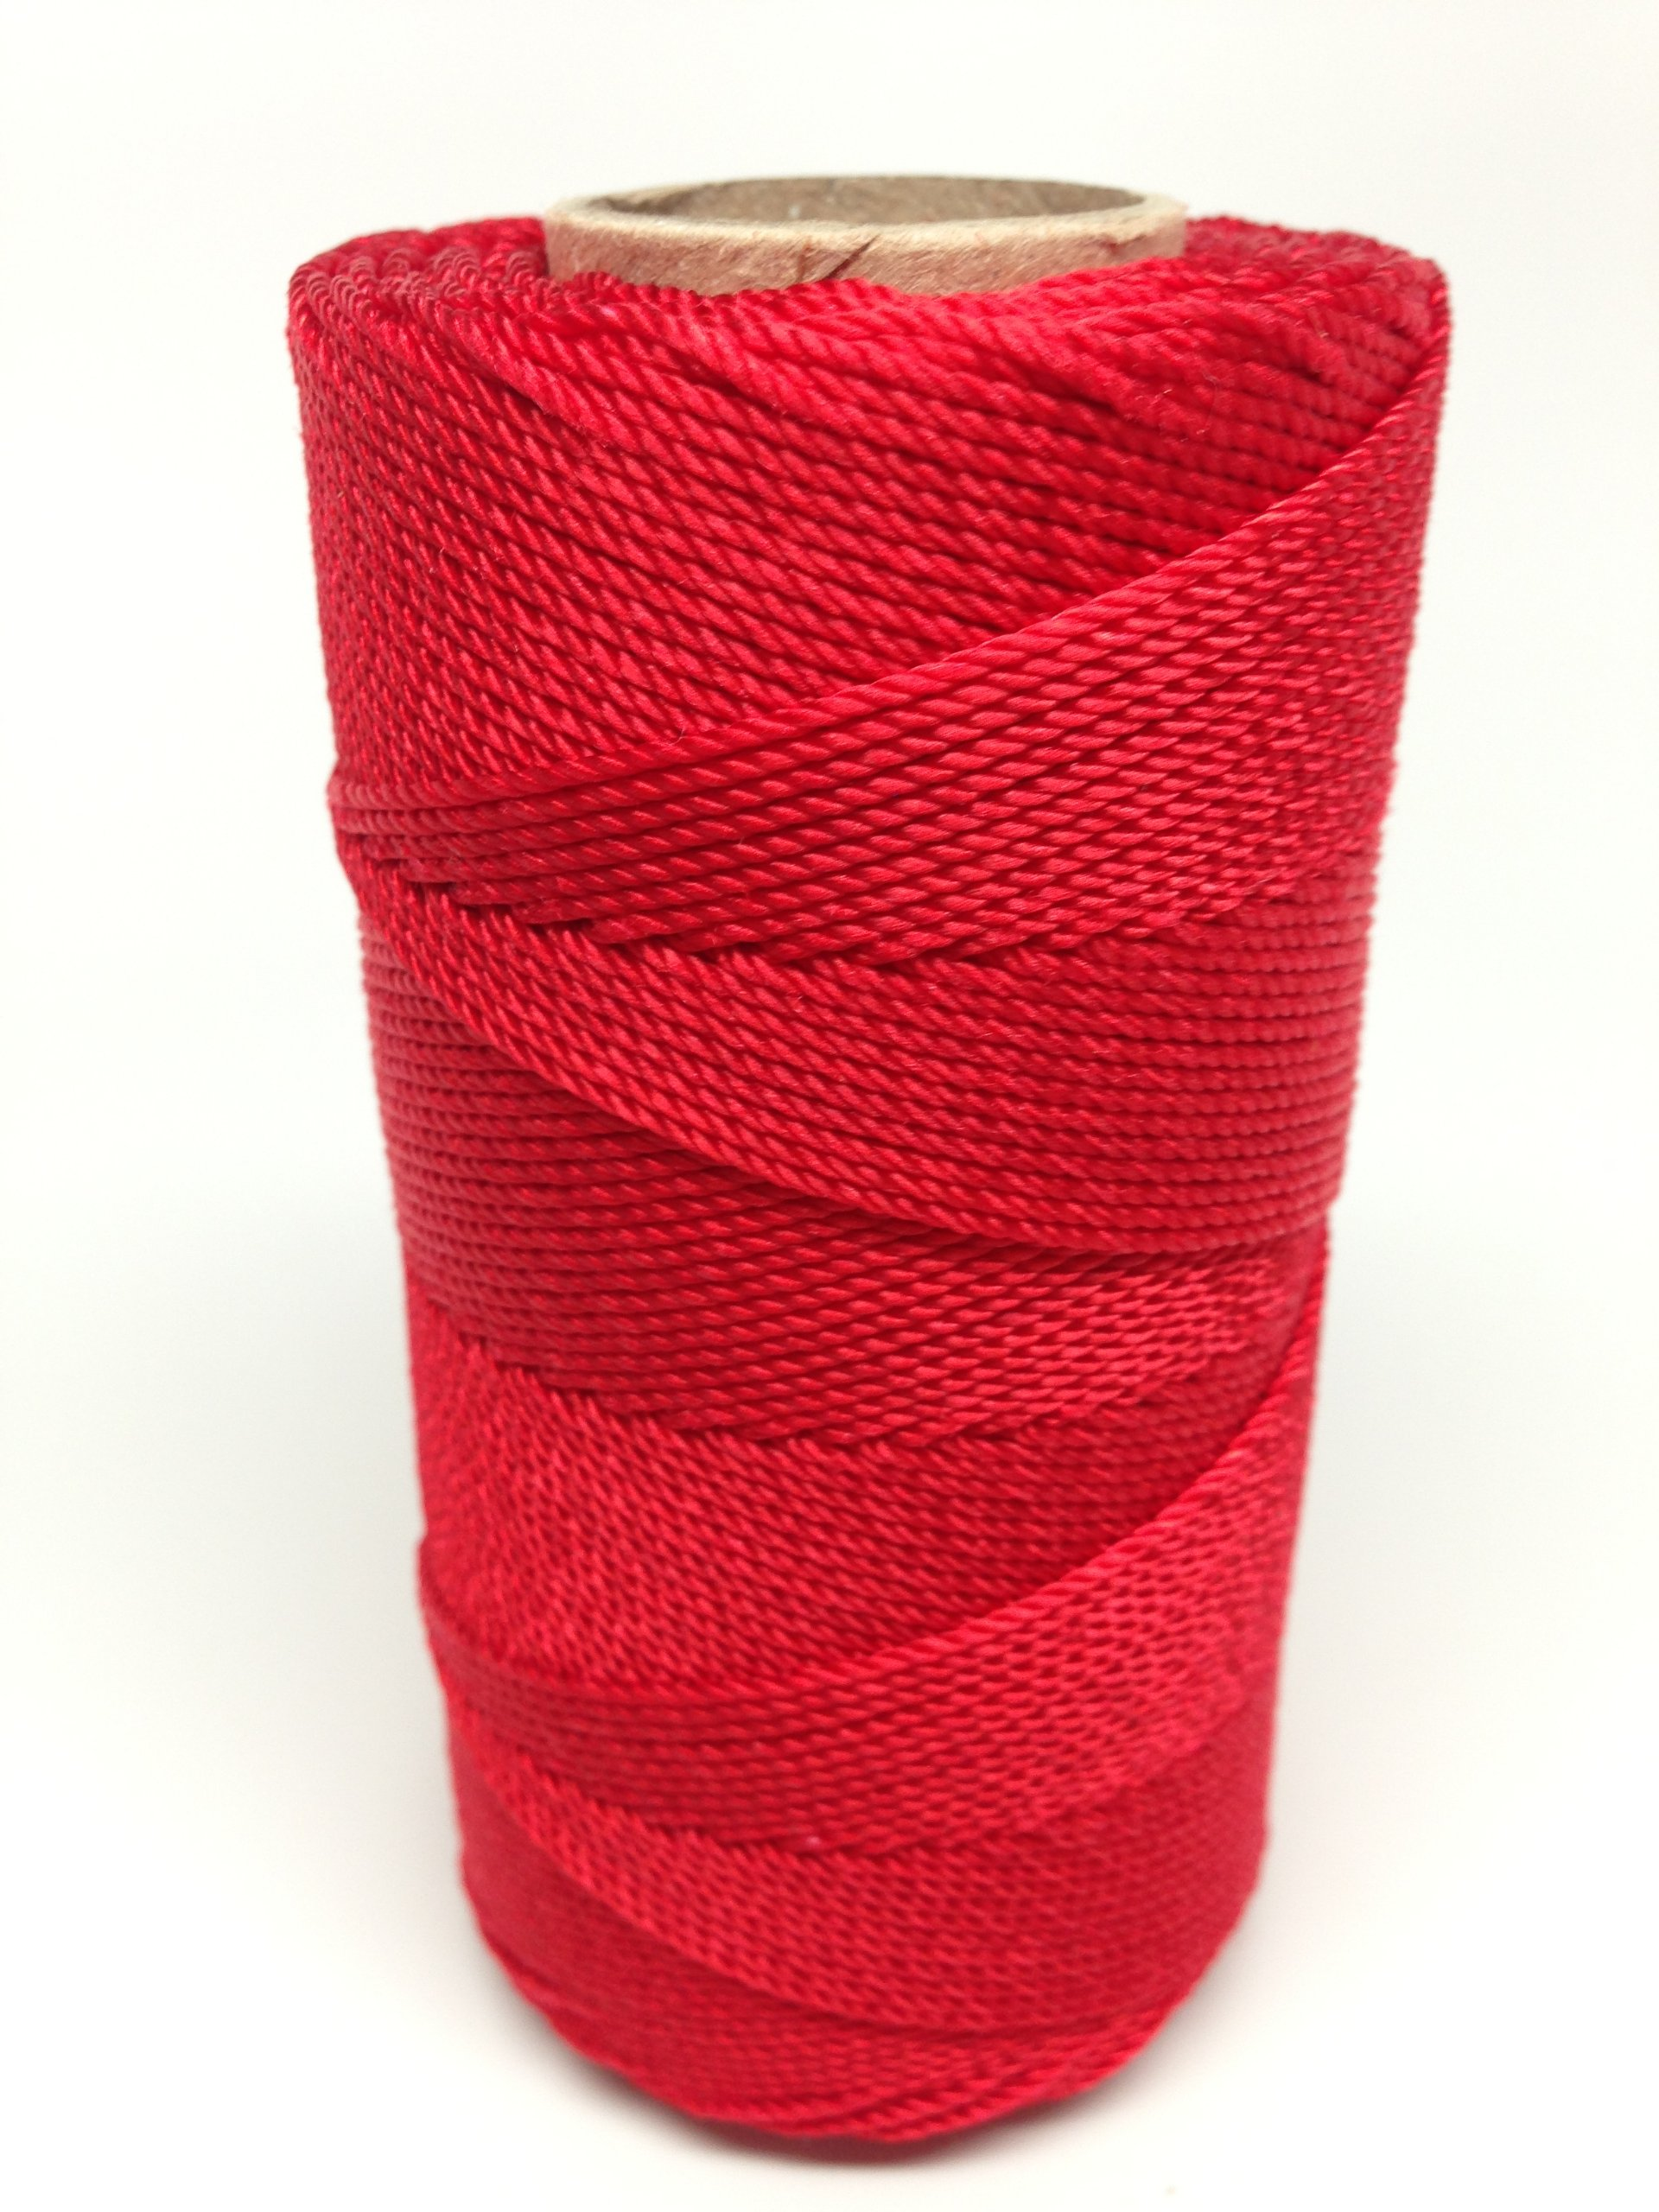 Rosary Twine #9 (1.07 mm) - SGT KNOTS - 3 Strand Twisted Nylon Crafting Twine Made for Rosaries - Easy to Work With, Soft, Even Consistency, Holds Knots - for Classes, Crafts, DIY (500 ft - Red)